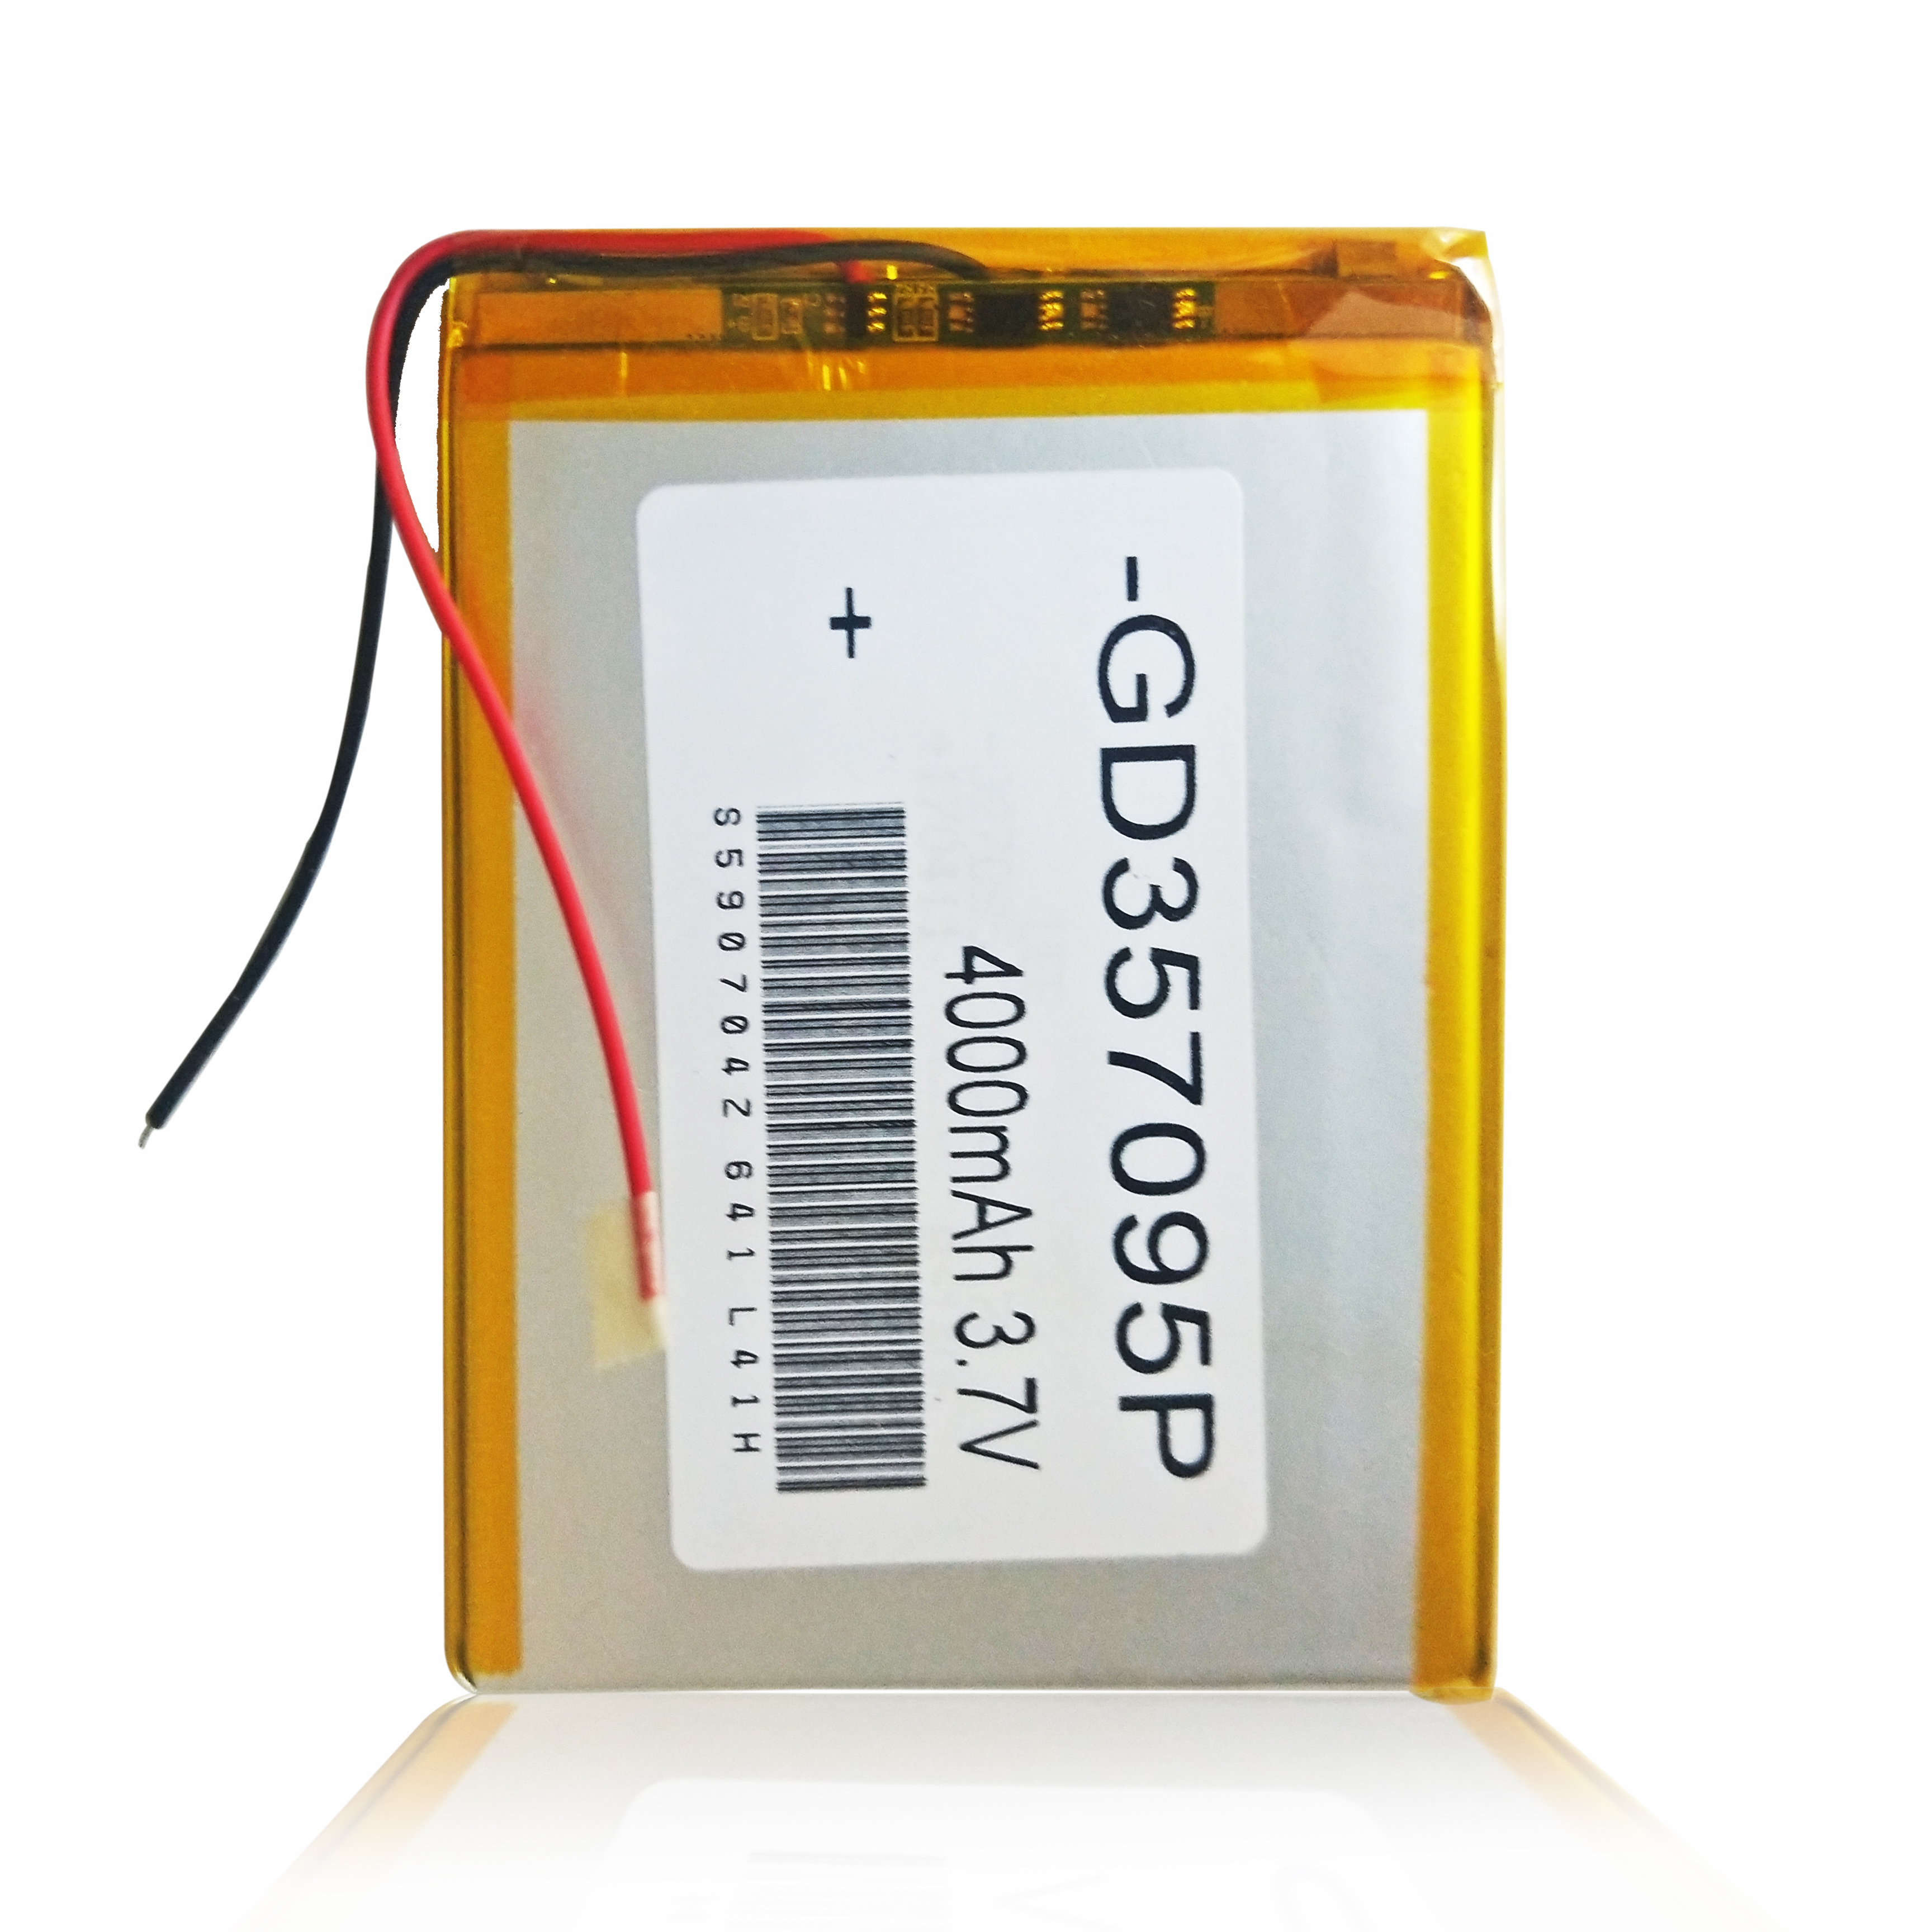 357090 <font><b>3.7V</b></font> <font><b>4000mAh</b></font> Rechargeable Li-Polymer Li-ion <font><b>Battery</b></font> For Digma Optima 7017N 3G TS7177MG 7103m TS7027AW 7200T TT7042MG image